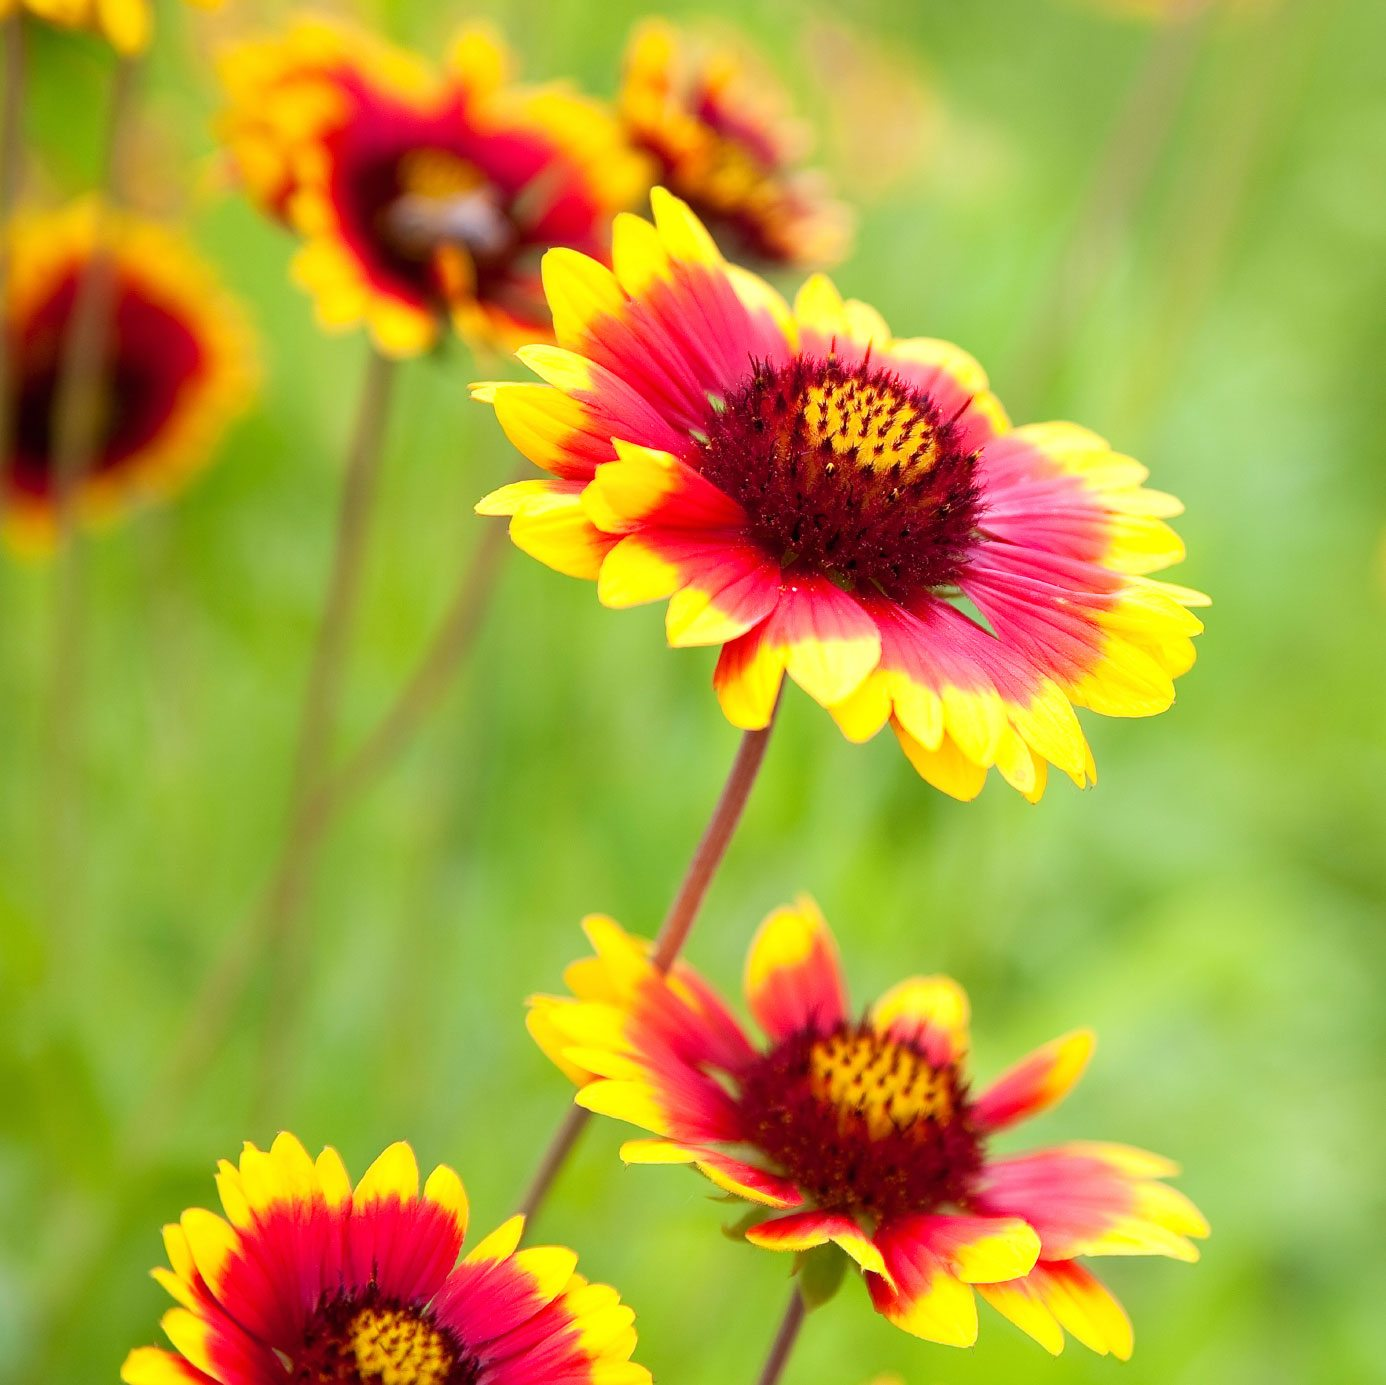 Blanket Flower Winter Care - How To Winterize Blanket ...